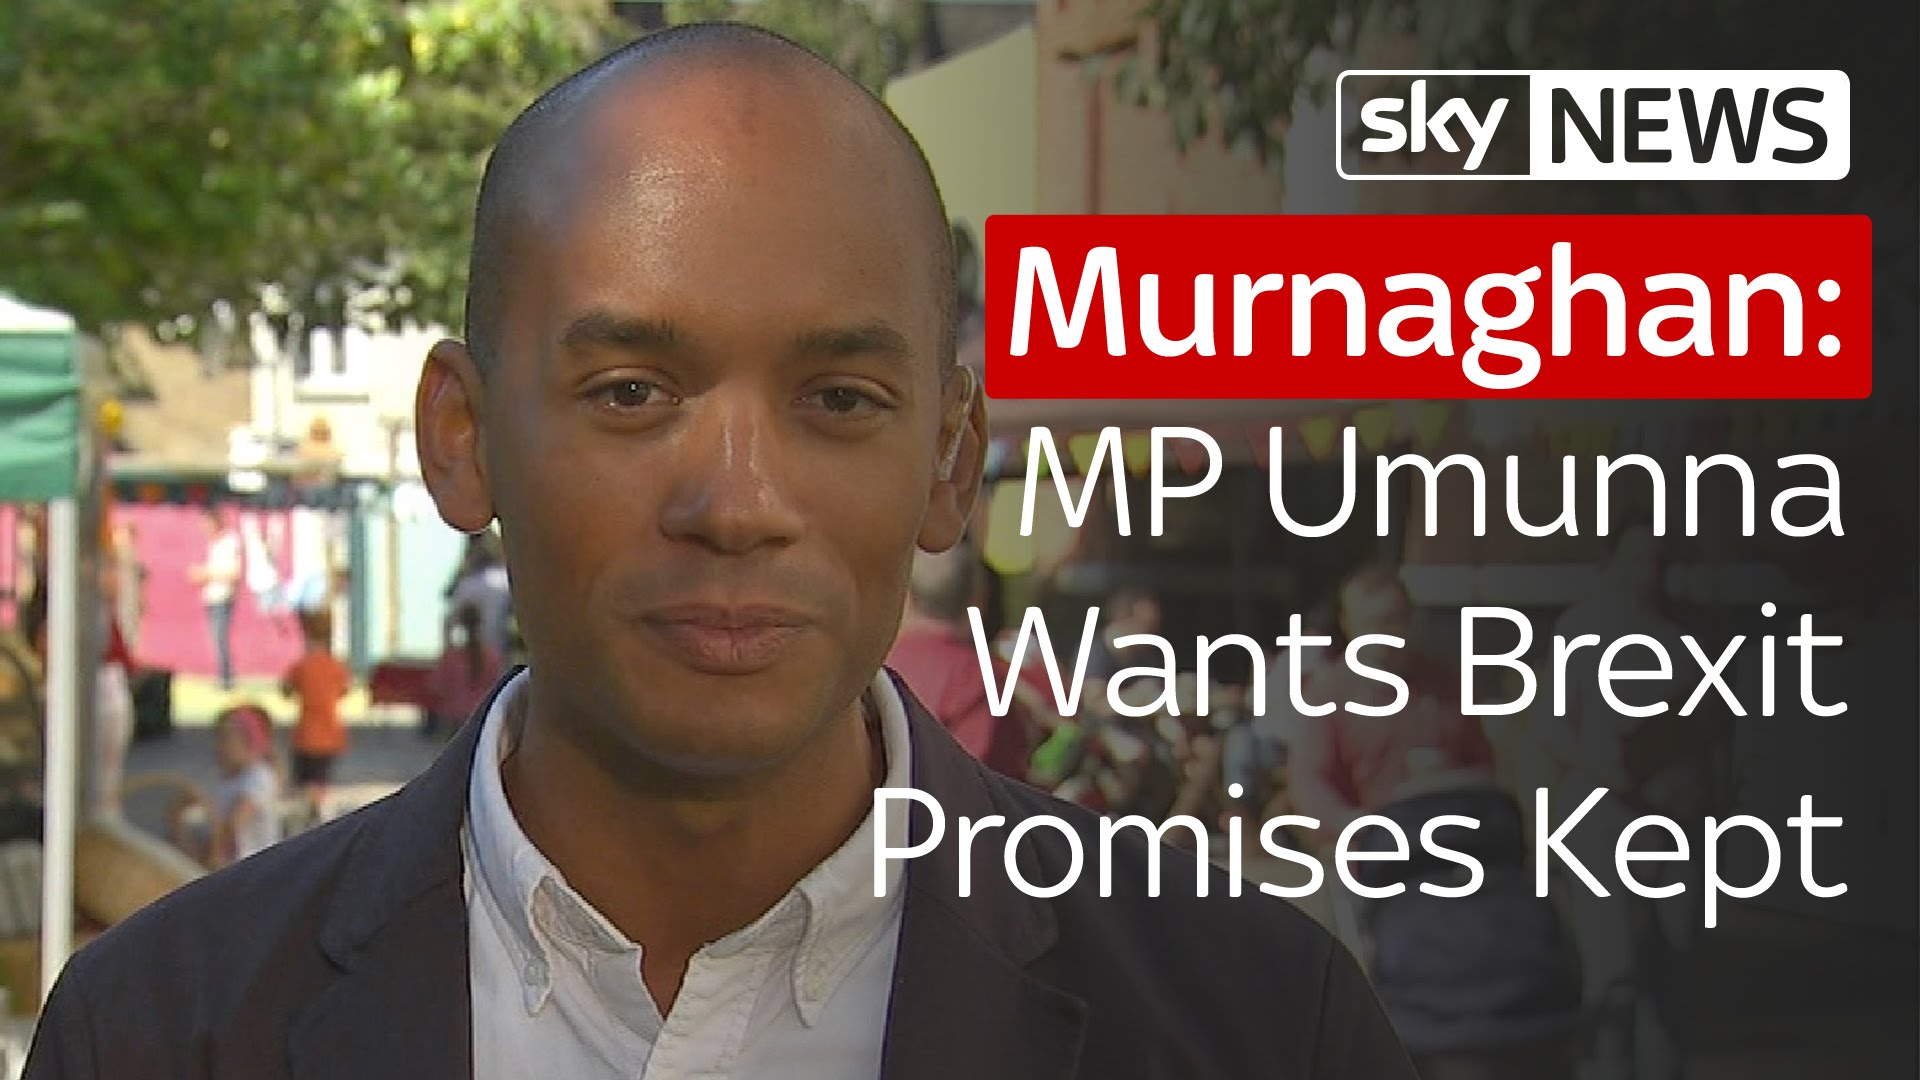 Labour MP Umunna Wants Brexit Promises Kept 8